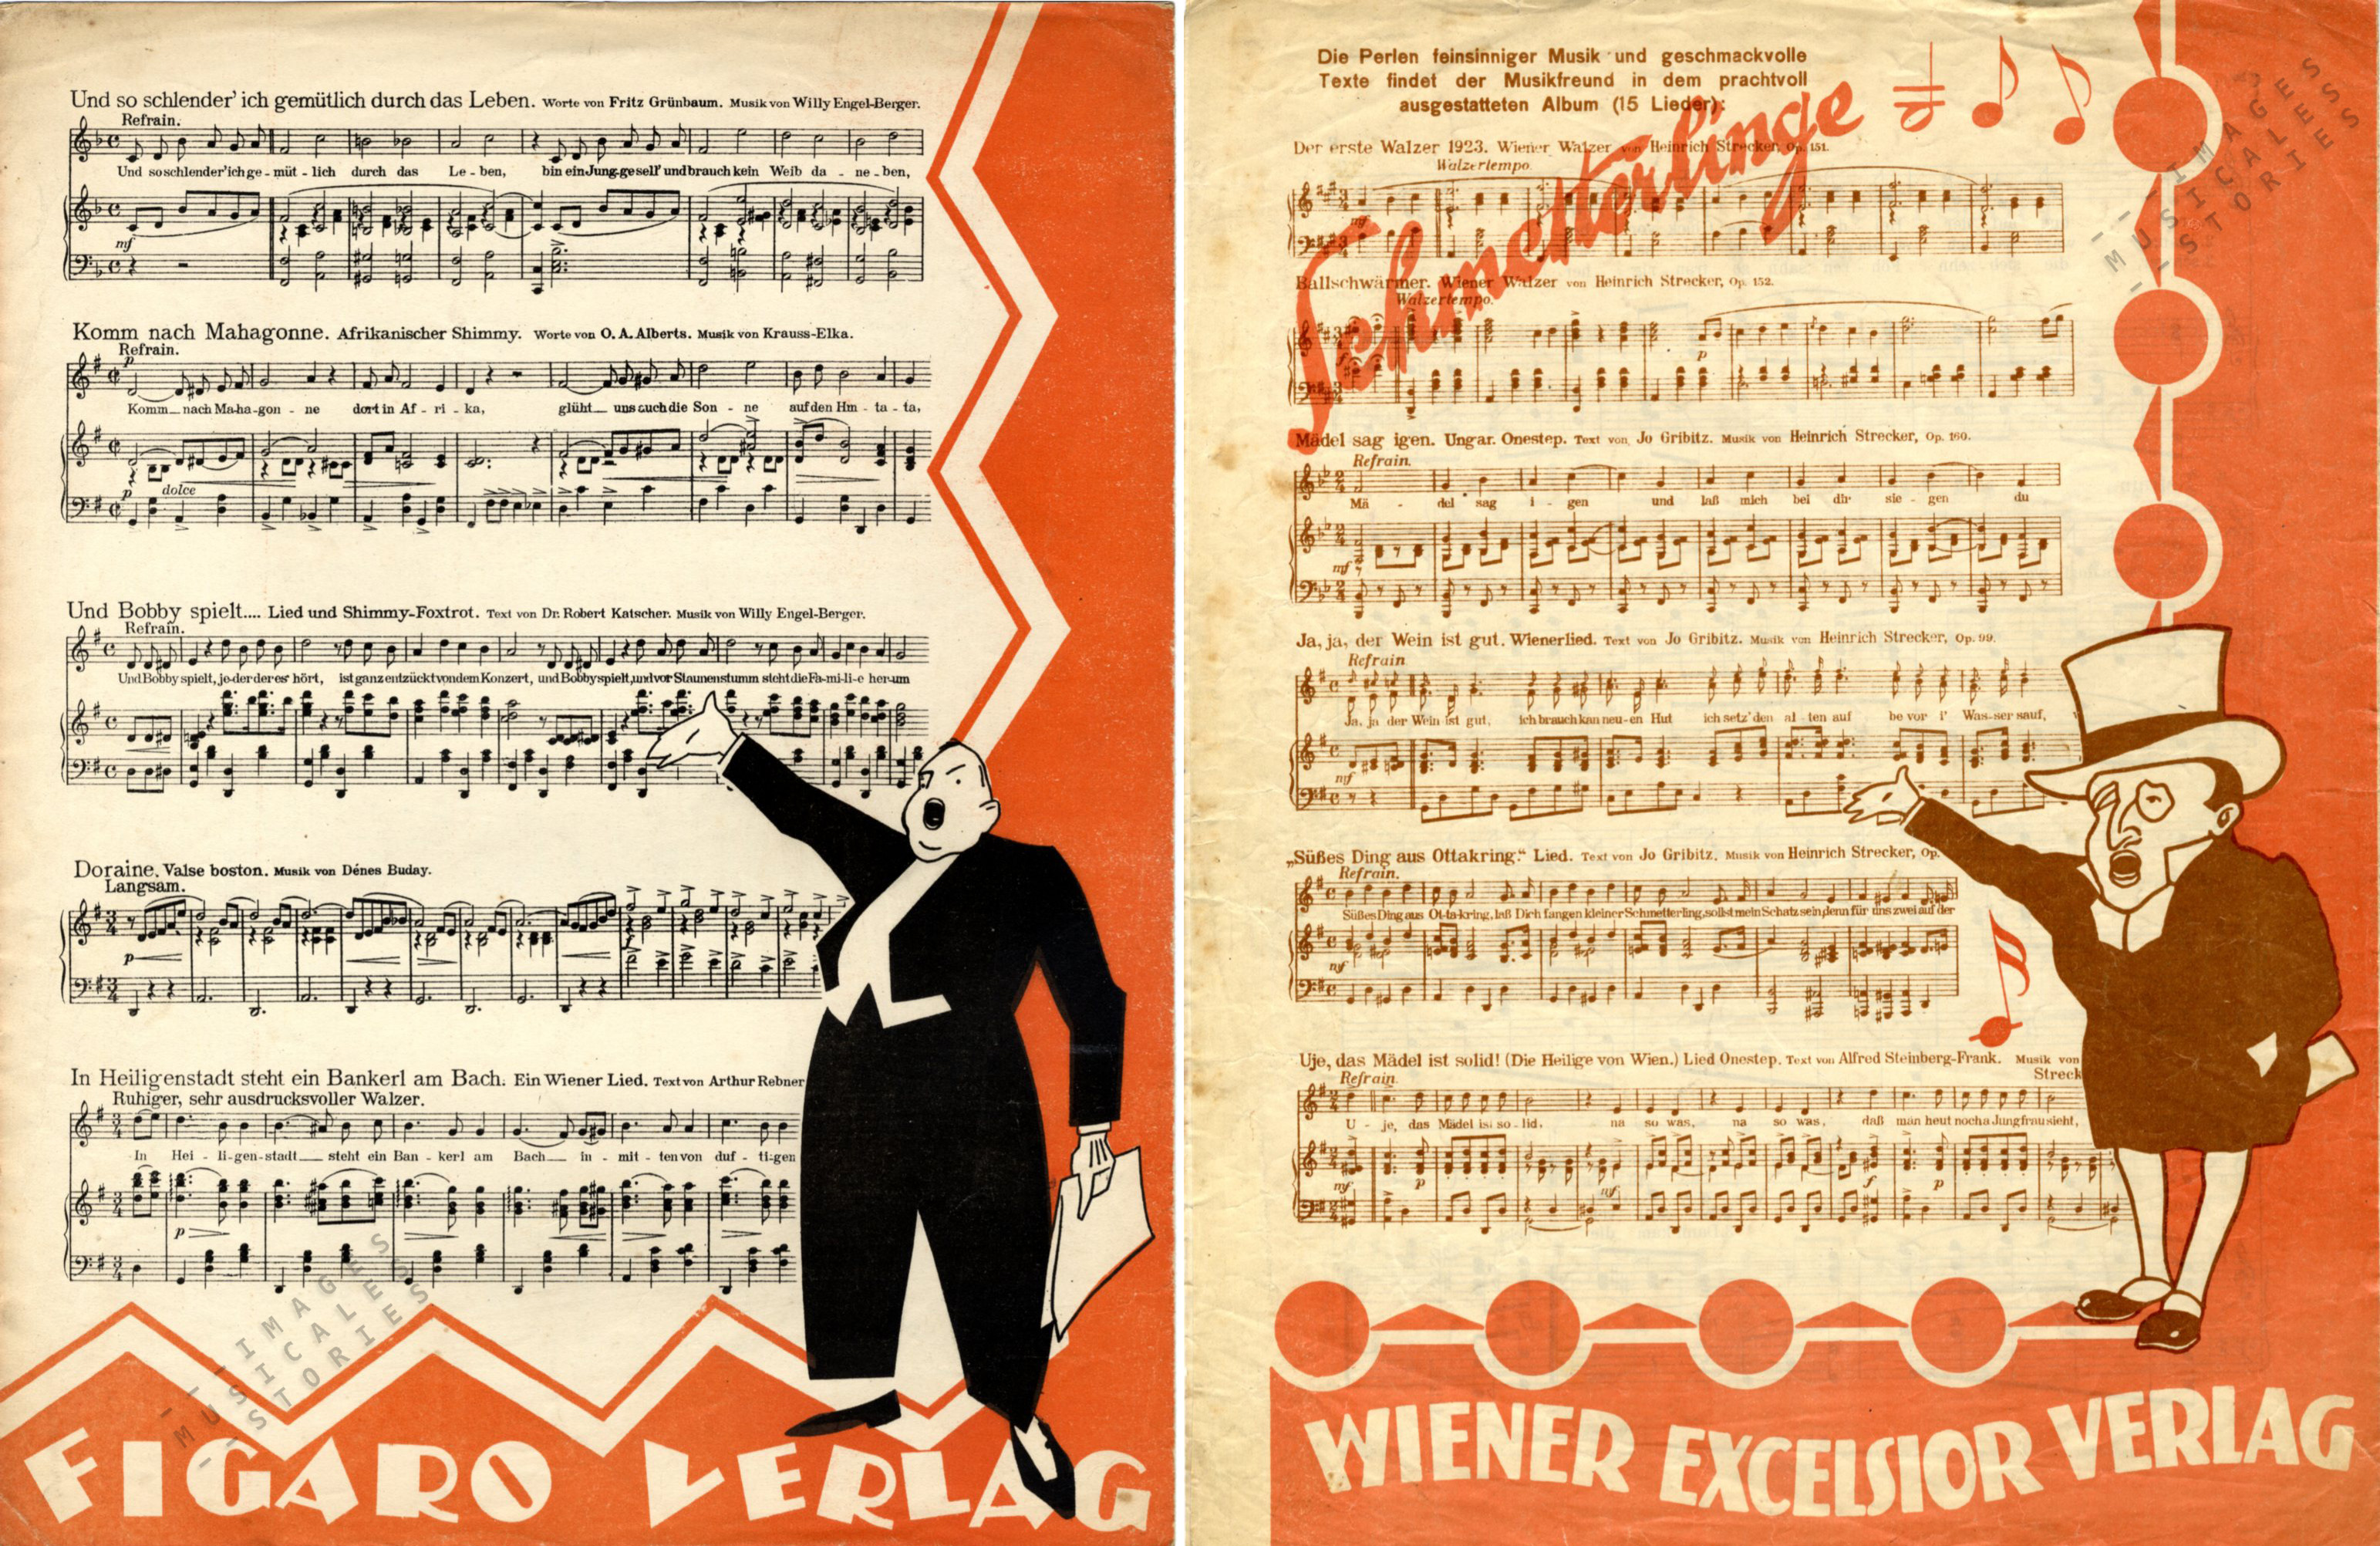 Two very similar back covers using a stage announcer (or singer?). Figaro Verlag on the left, and Wiener Excelsior Verlag on the right (both unsigned, s.d.)